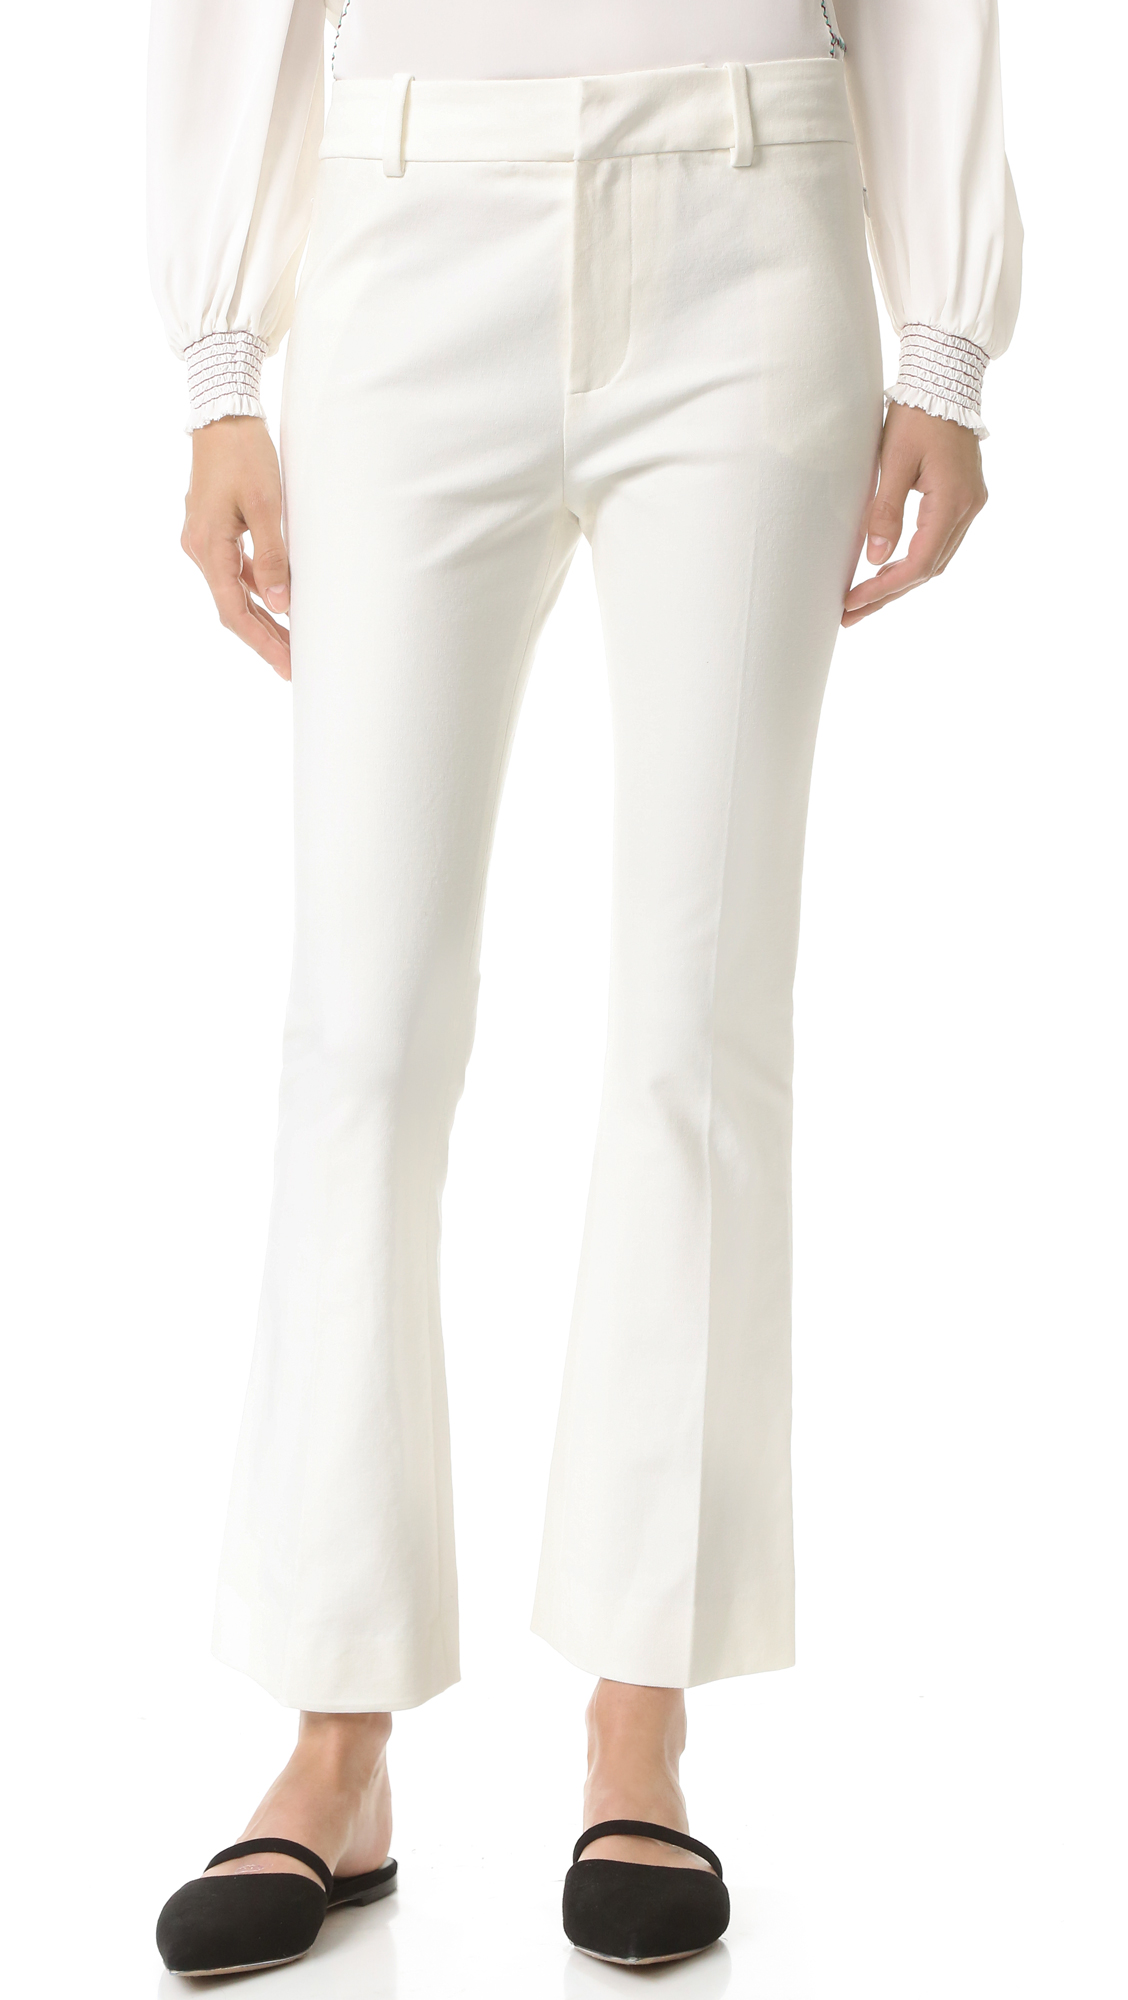 Derek Lam 10 Crosby Cropped Flare Trousers - Soft White